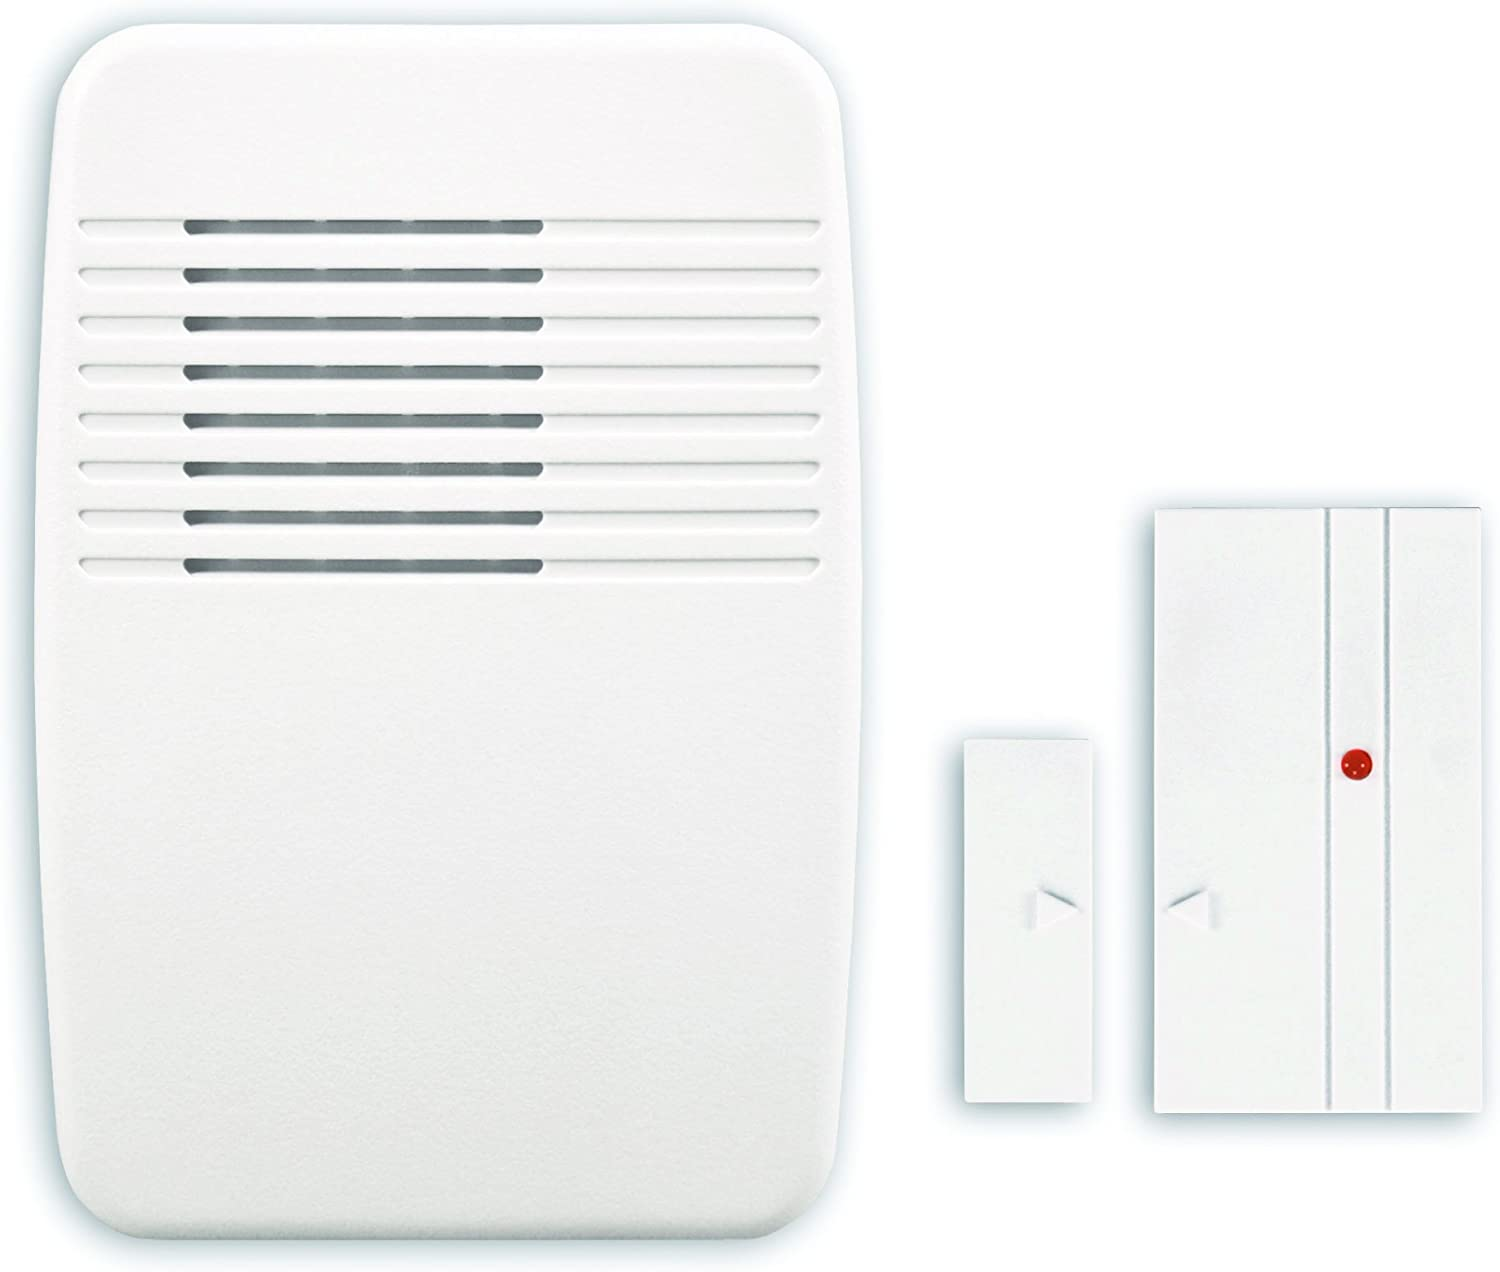 Heath Zenith SL-7368-02 Wireless Entry Alert Chime